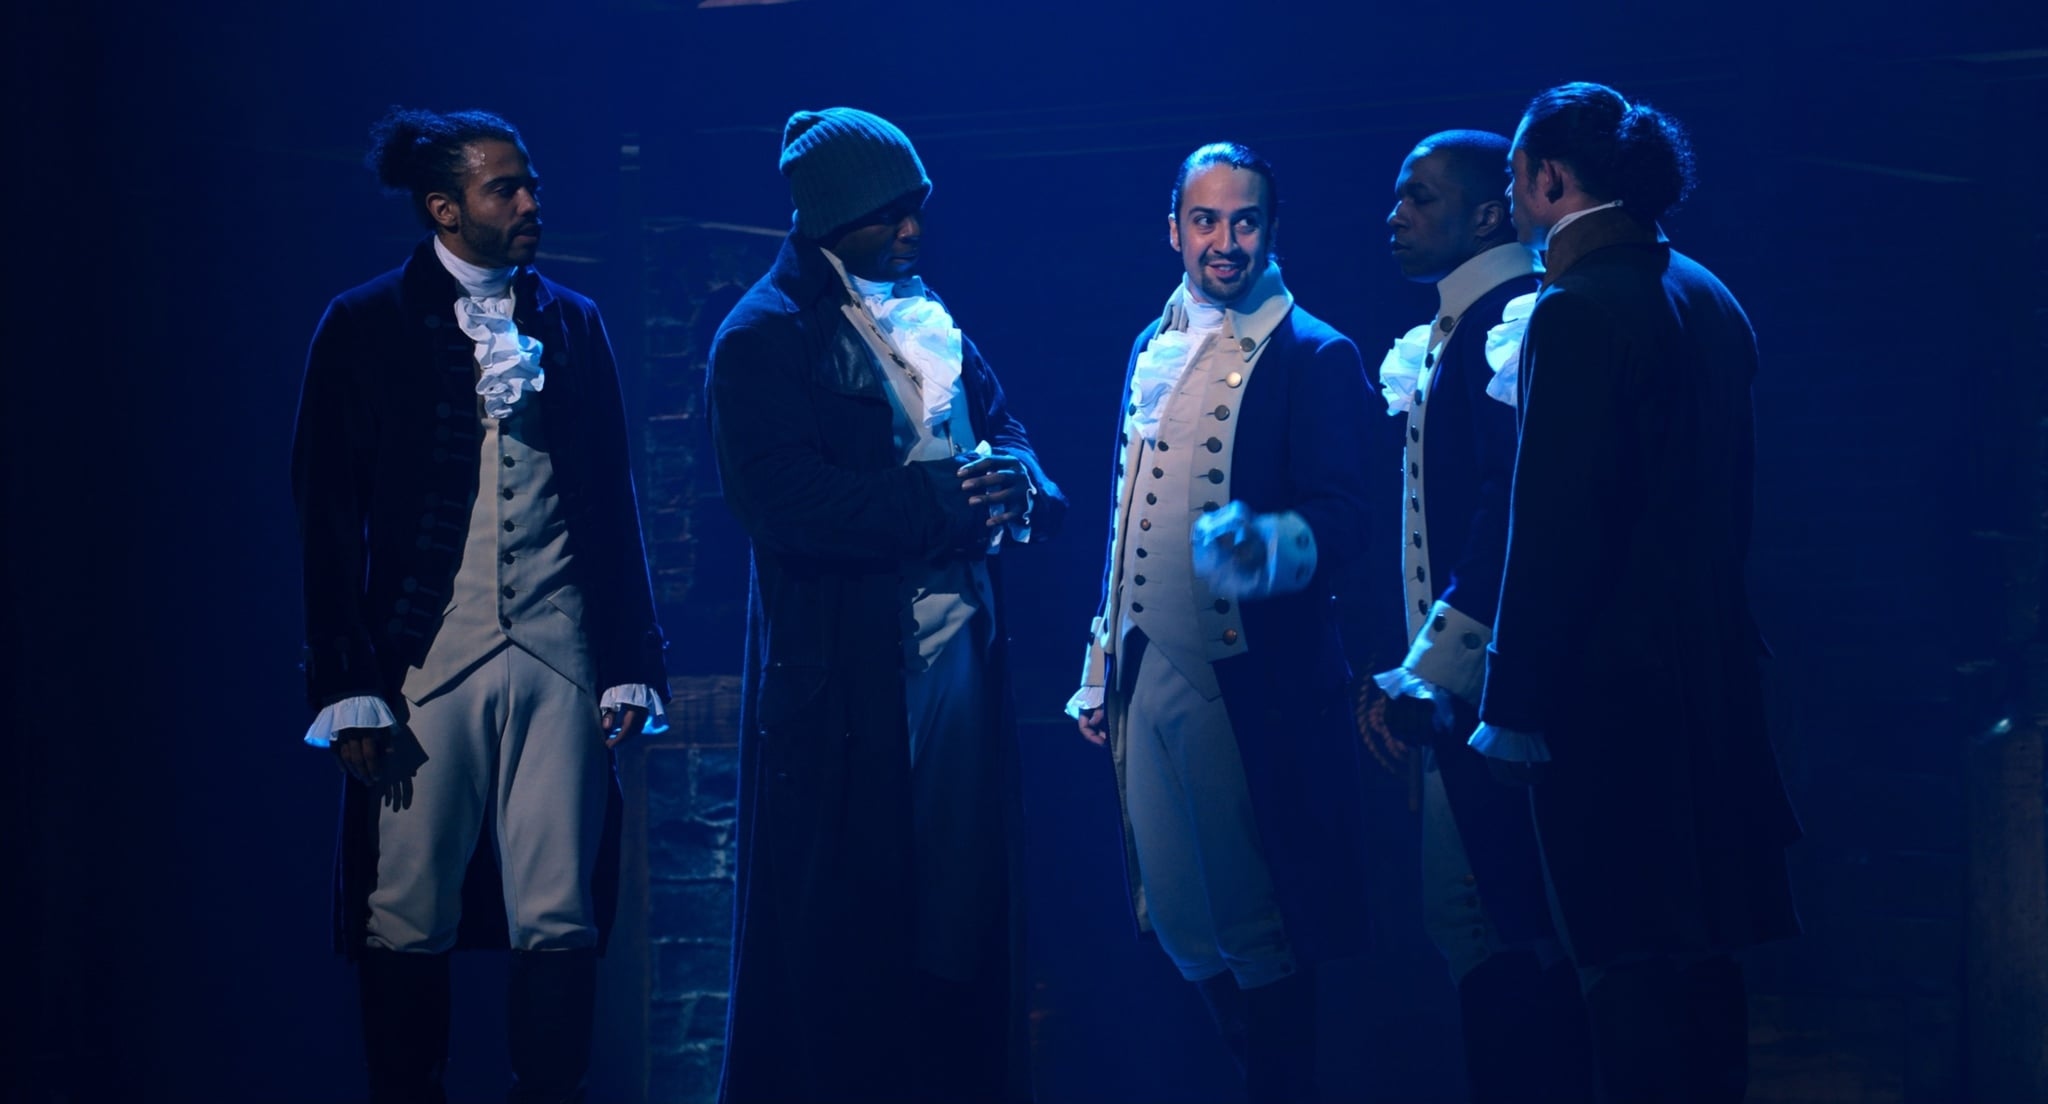 HAMILTON, from left: Daveed Diggs as the Marquis de Lafayette, Okieriete Onaodowan as Hercules Mulligan, Lin-Manuel Miranda as Alexander Hamilton, Leslie Odom Jr. as Aaron Burr, Anthony Ramos as John Laurens, 2020. Disney+ / Courtesy Everett Collection